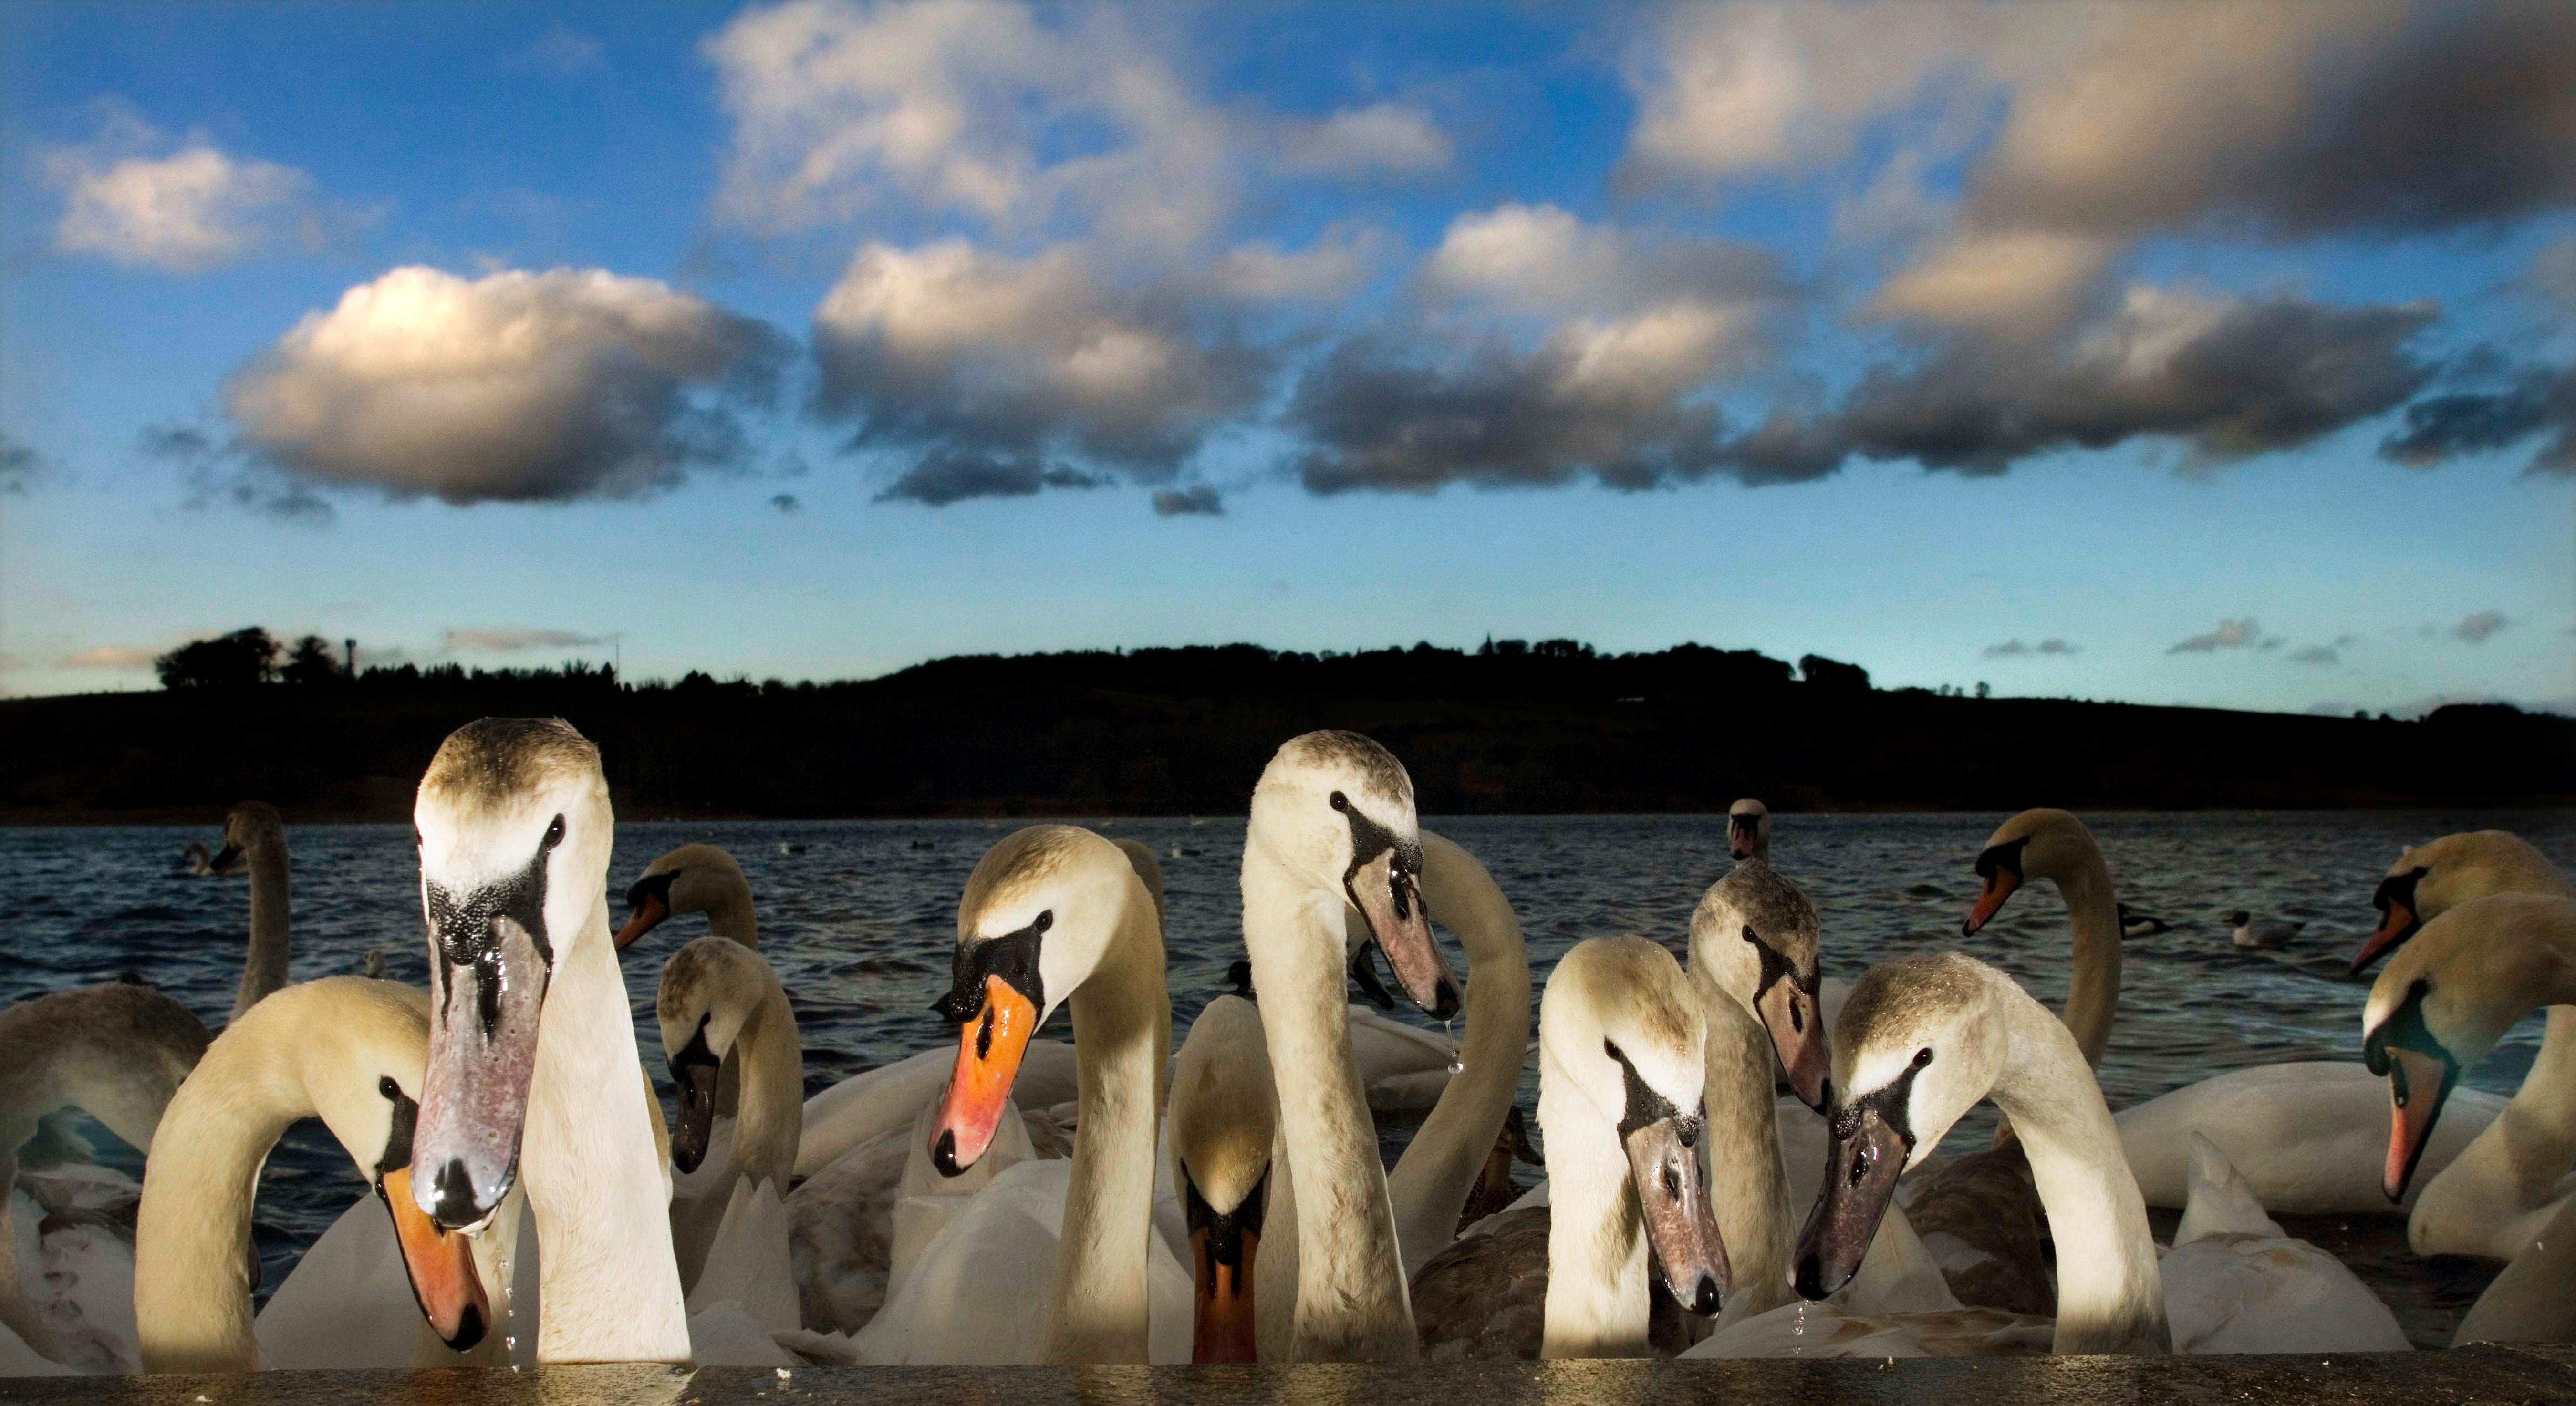 Buy a classic Guardian photograph: Swans at dusk at Linlithgow, Scotland